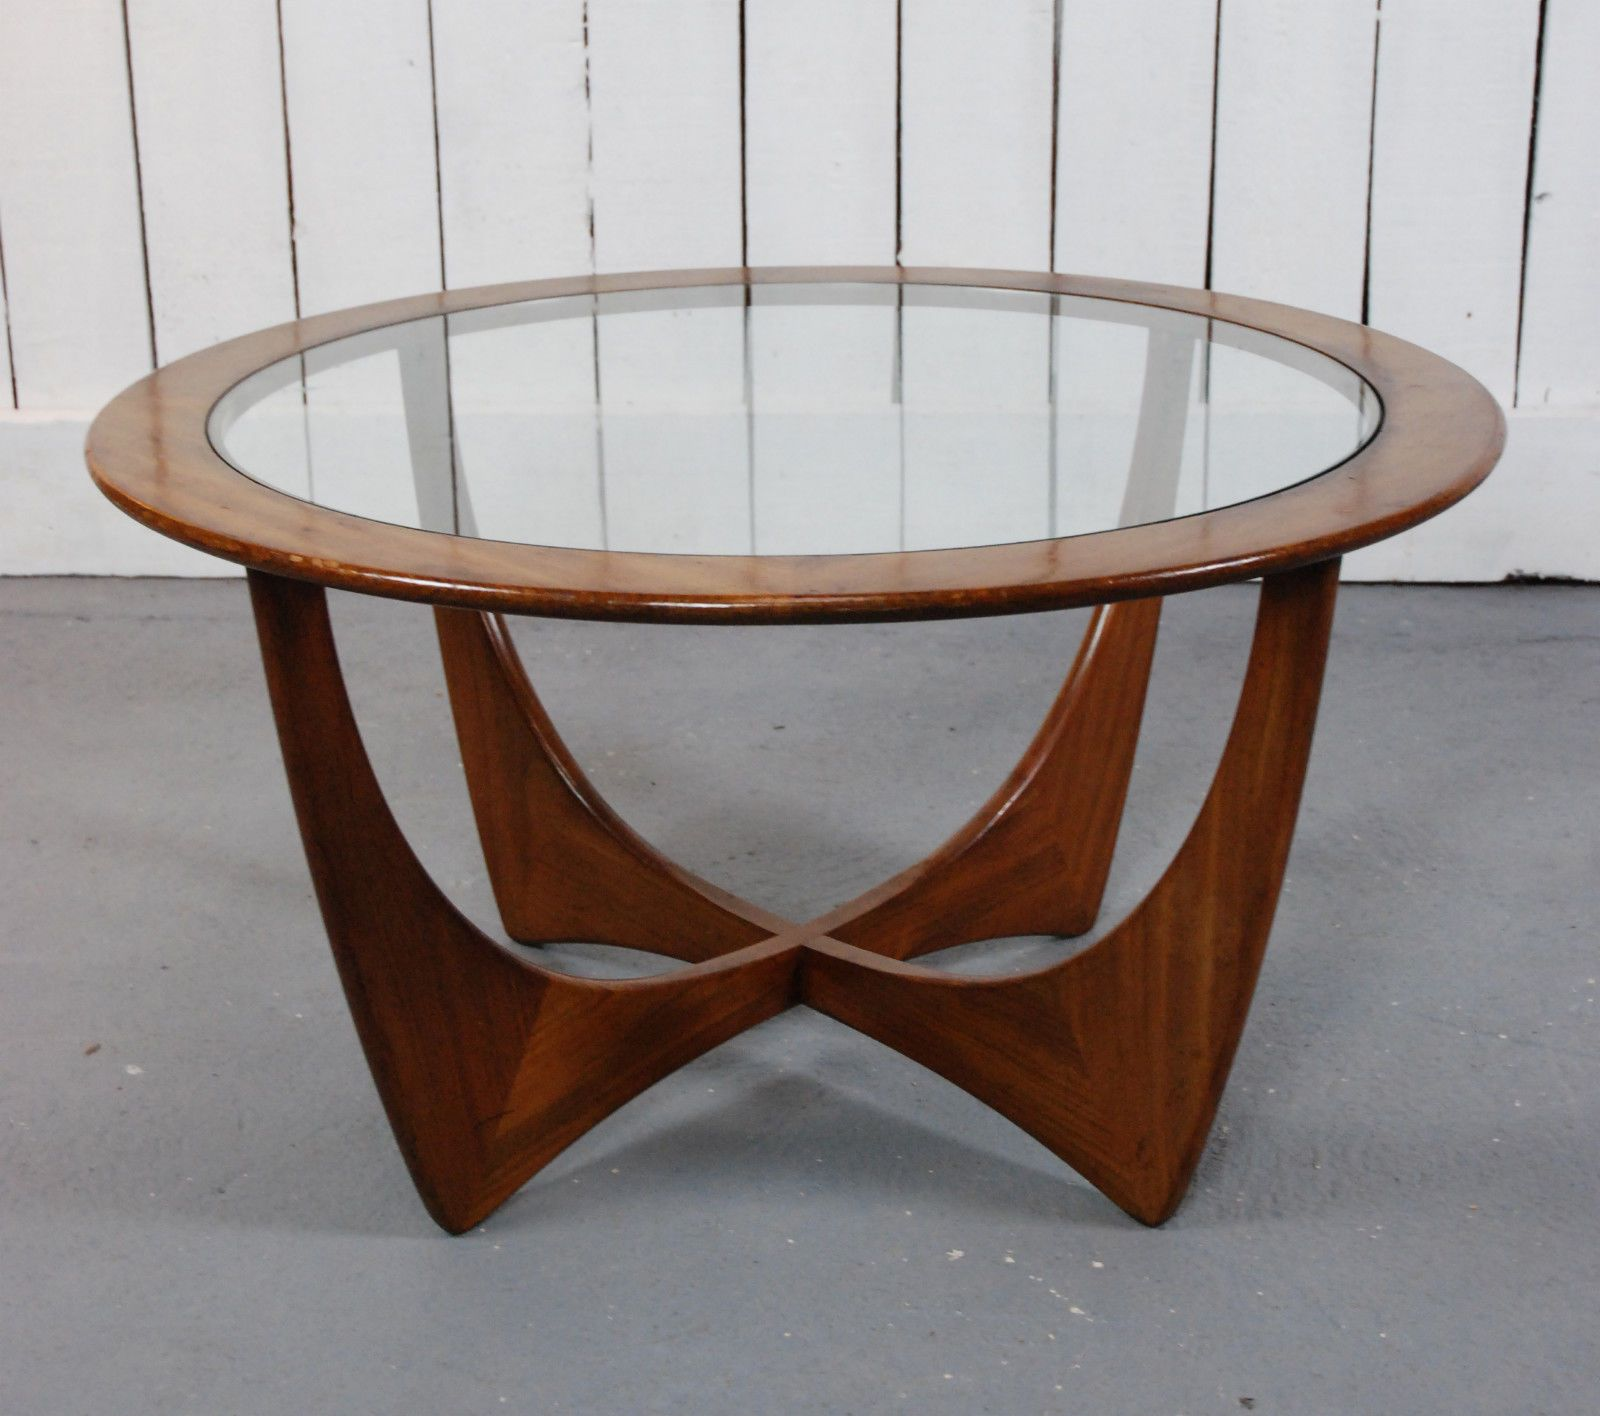 Retro teak g plan astro coffee table vintage danish style retro teak g plan astro coffee table vintage danish style round glass top geotapseo Gallery